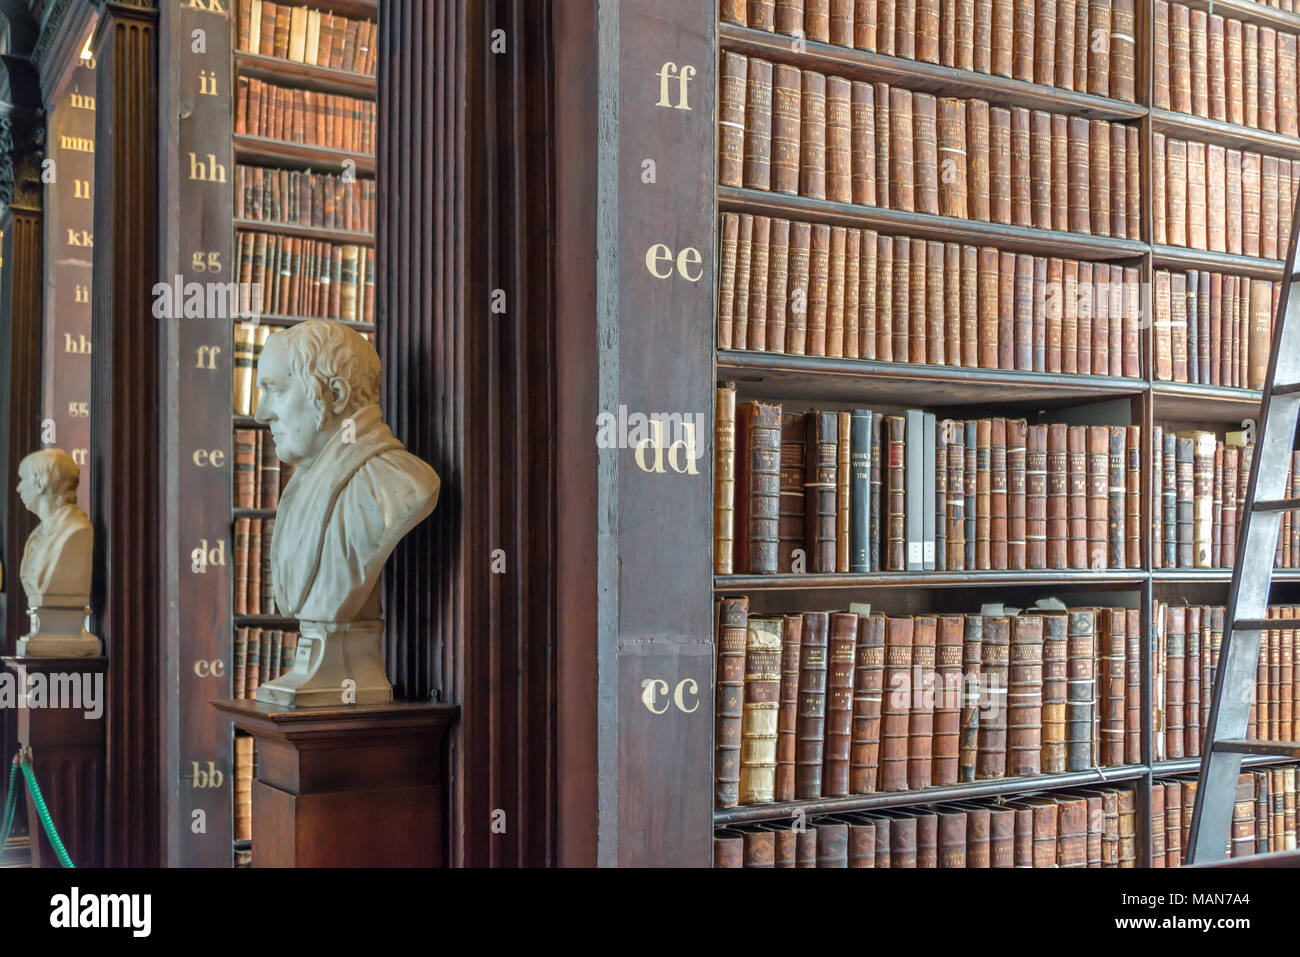 Statues And Bookshelves In The Long Room In The Trinity College Old Library  In Dublin, Ireland